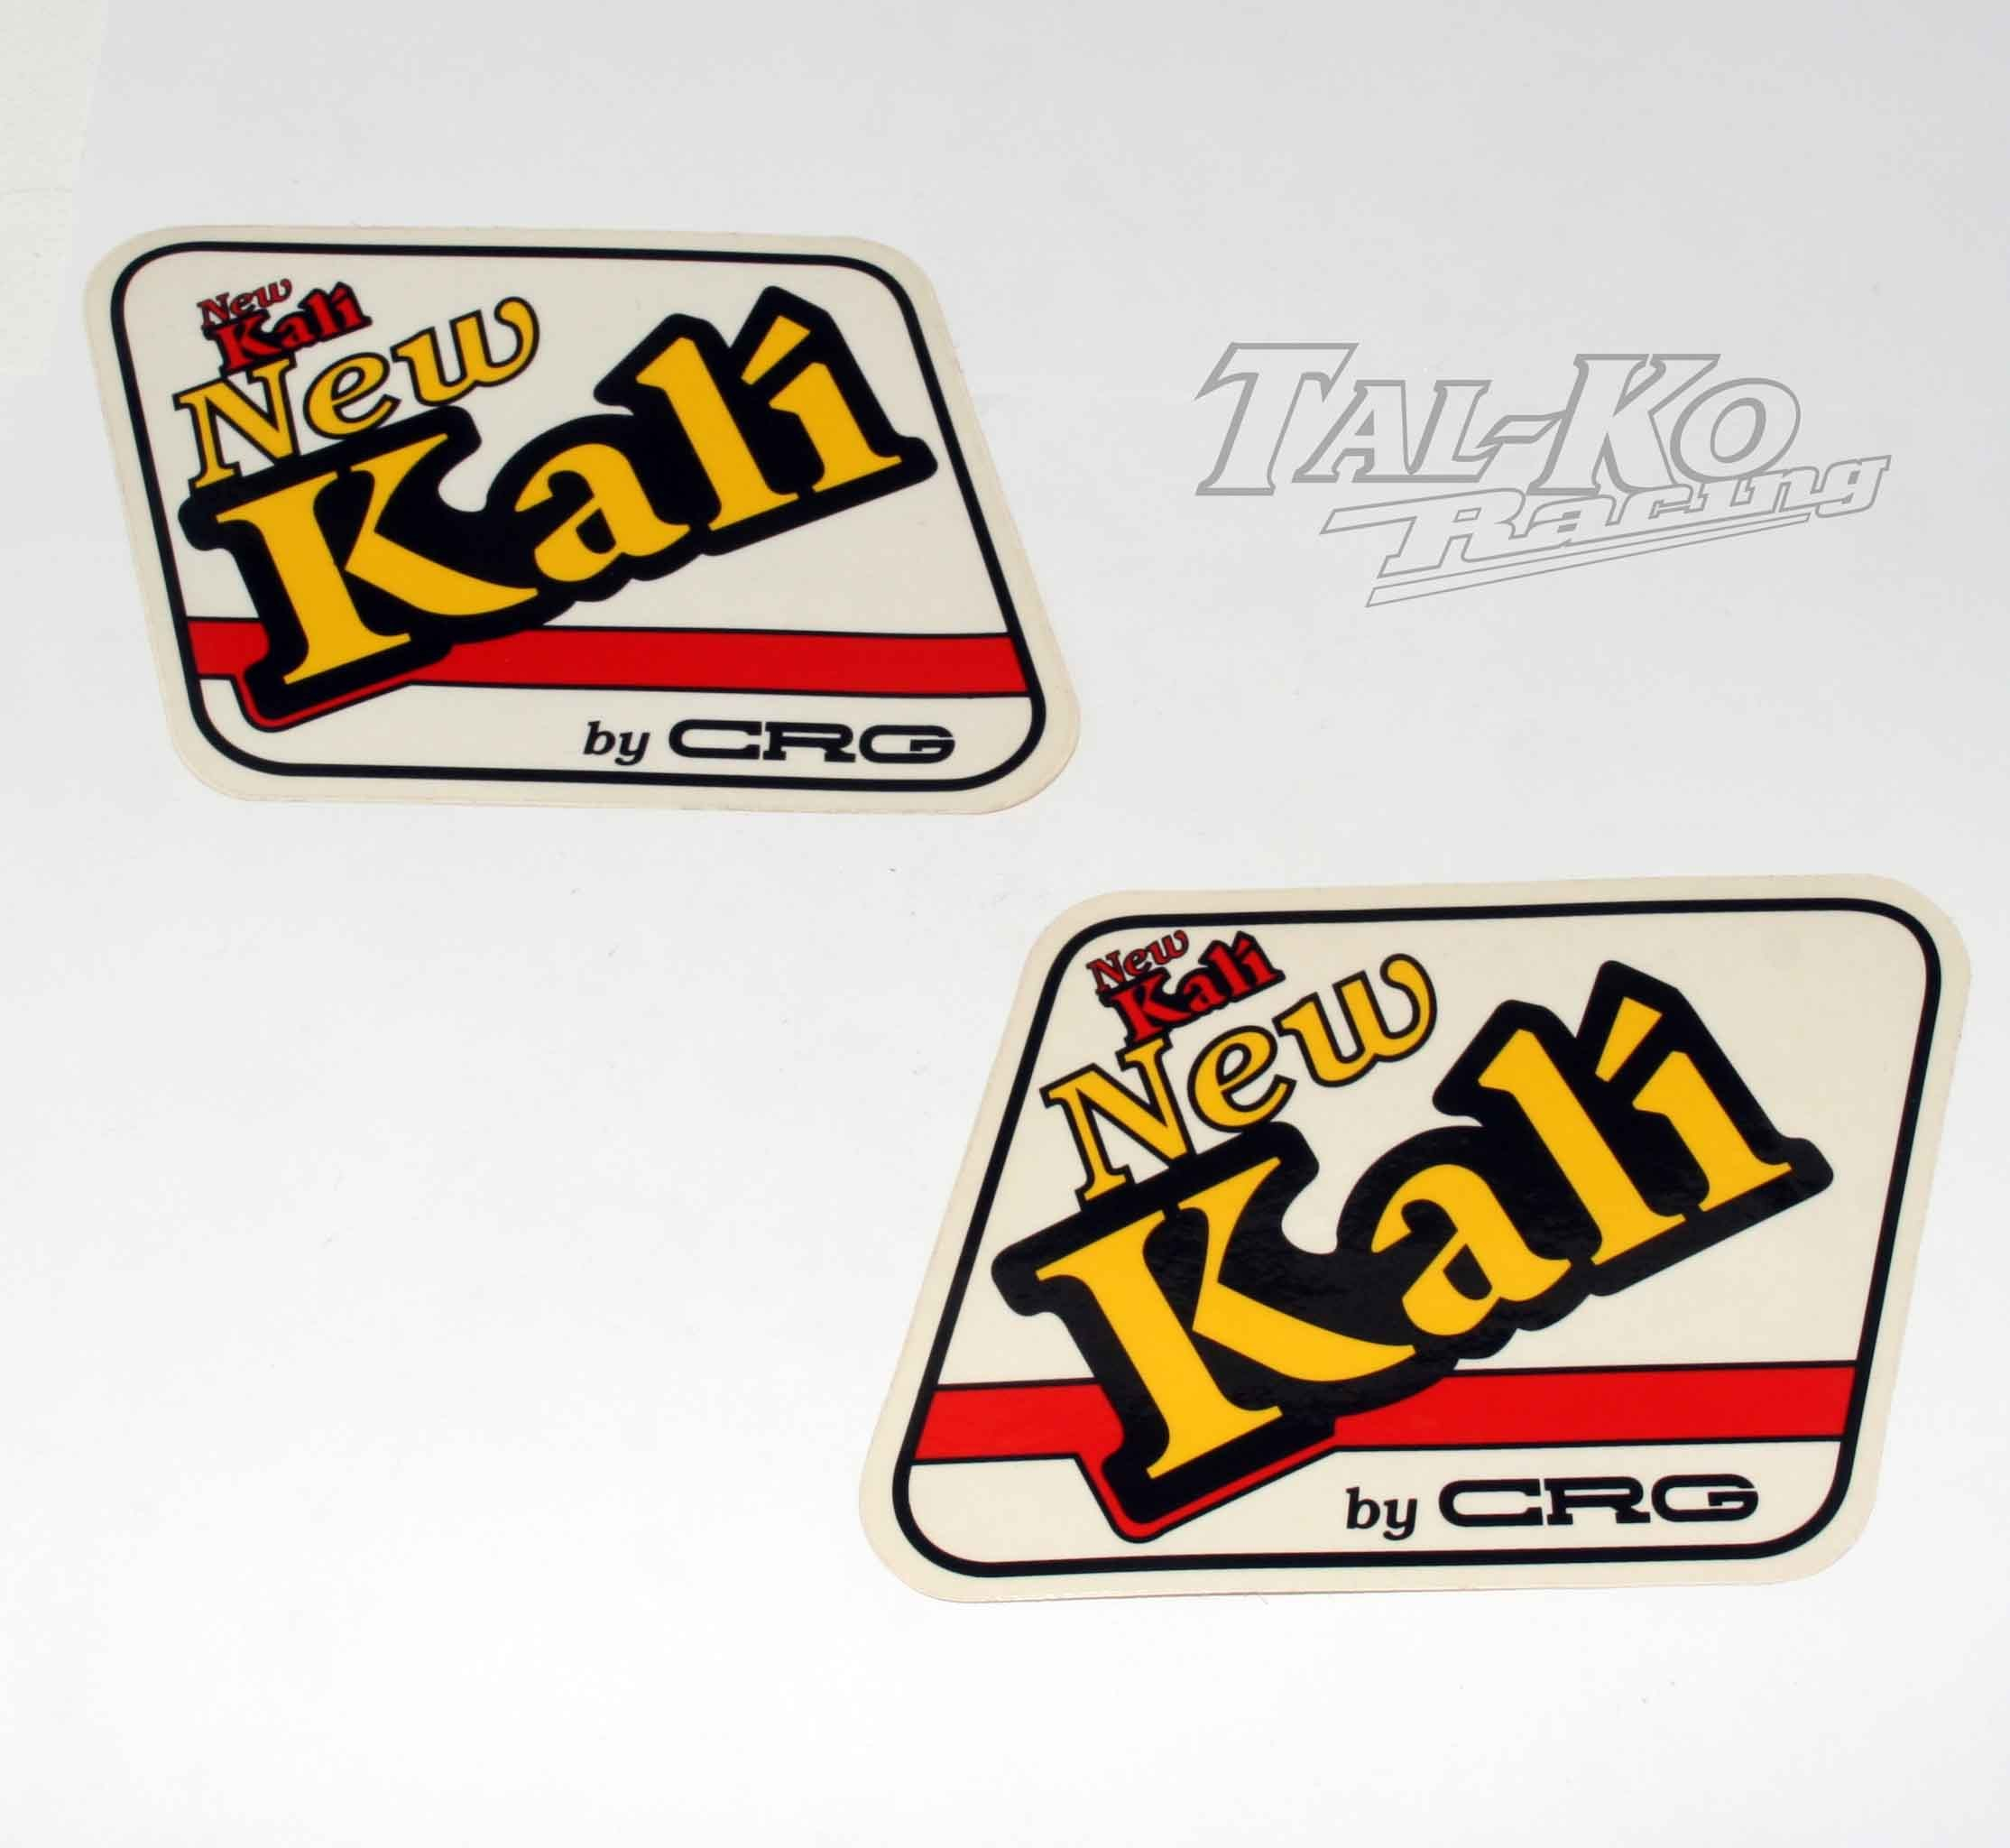 CRG KALI STICKER DECAL TANK KIT RED